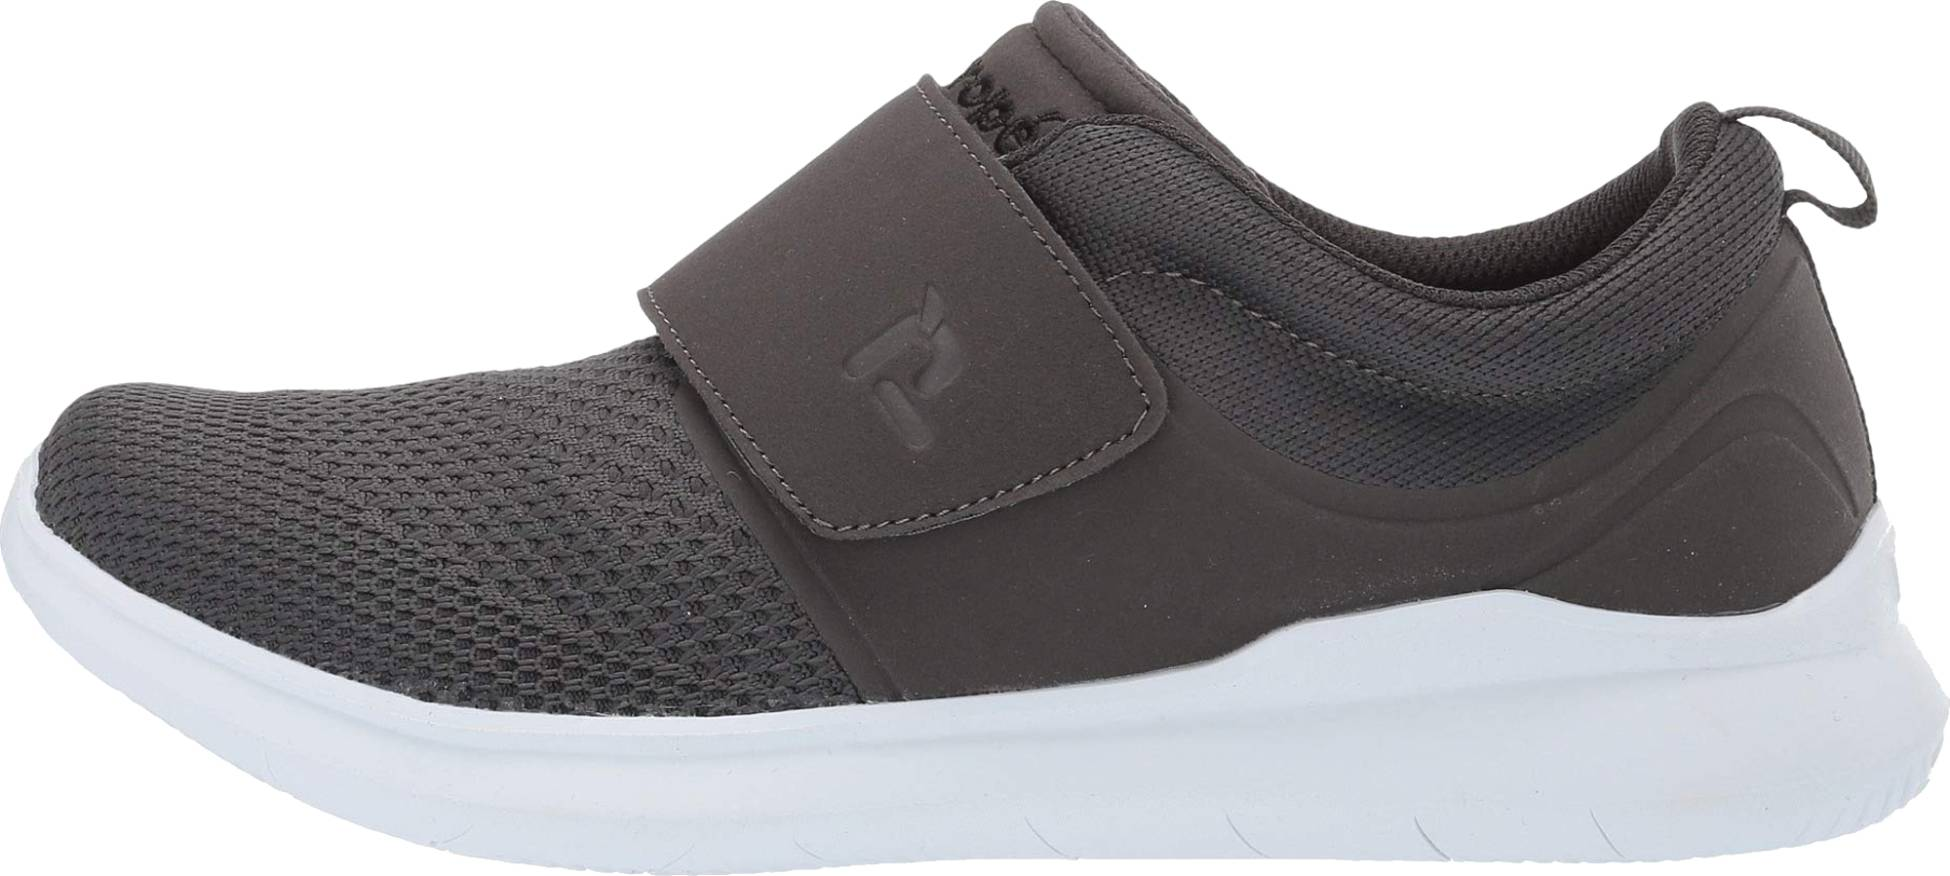 Save 62% on Propet Walking Shoes (15